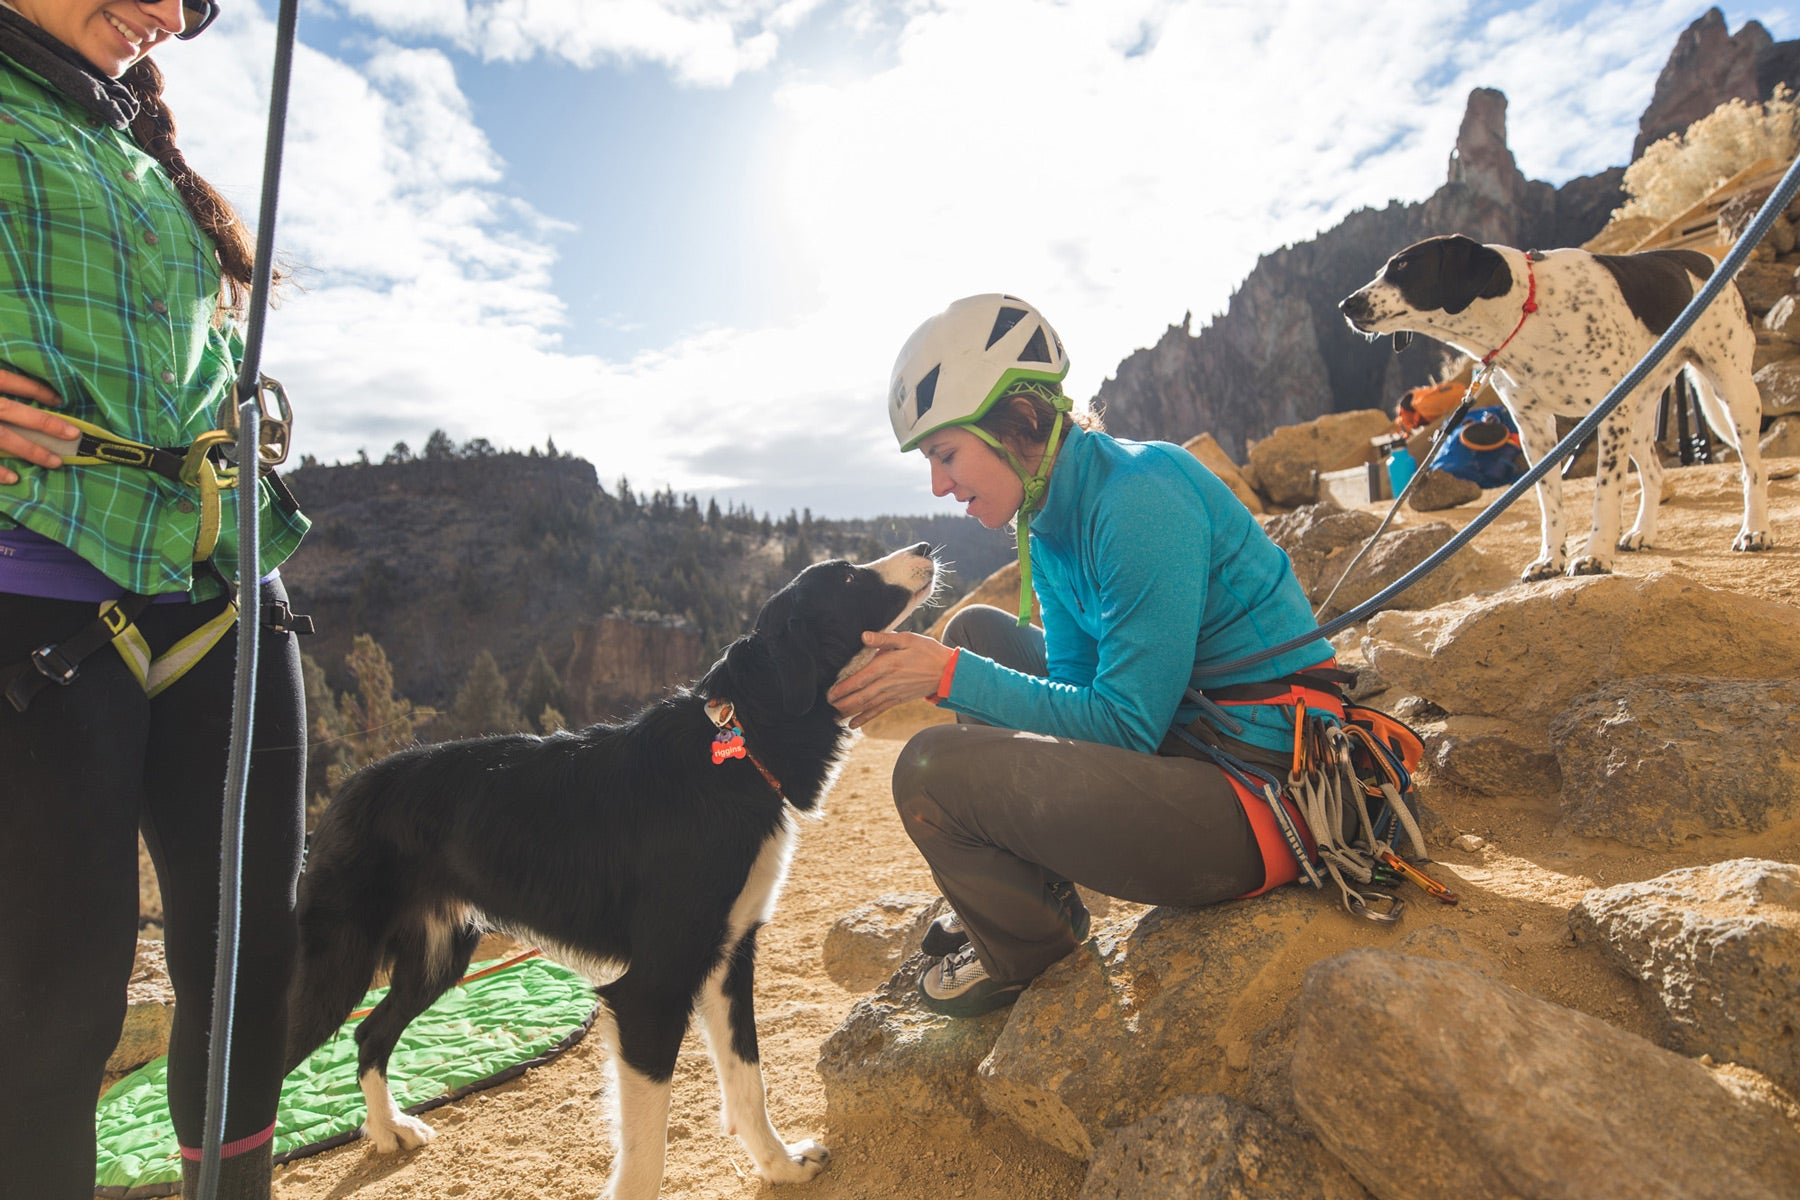 Border collie dog gives climber kisses after climb while other dog looks on.